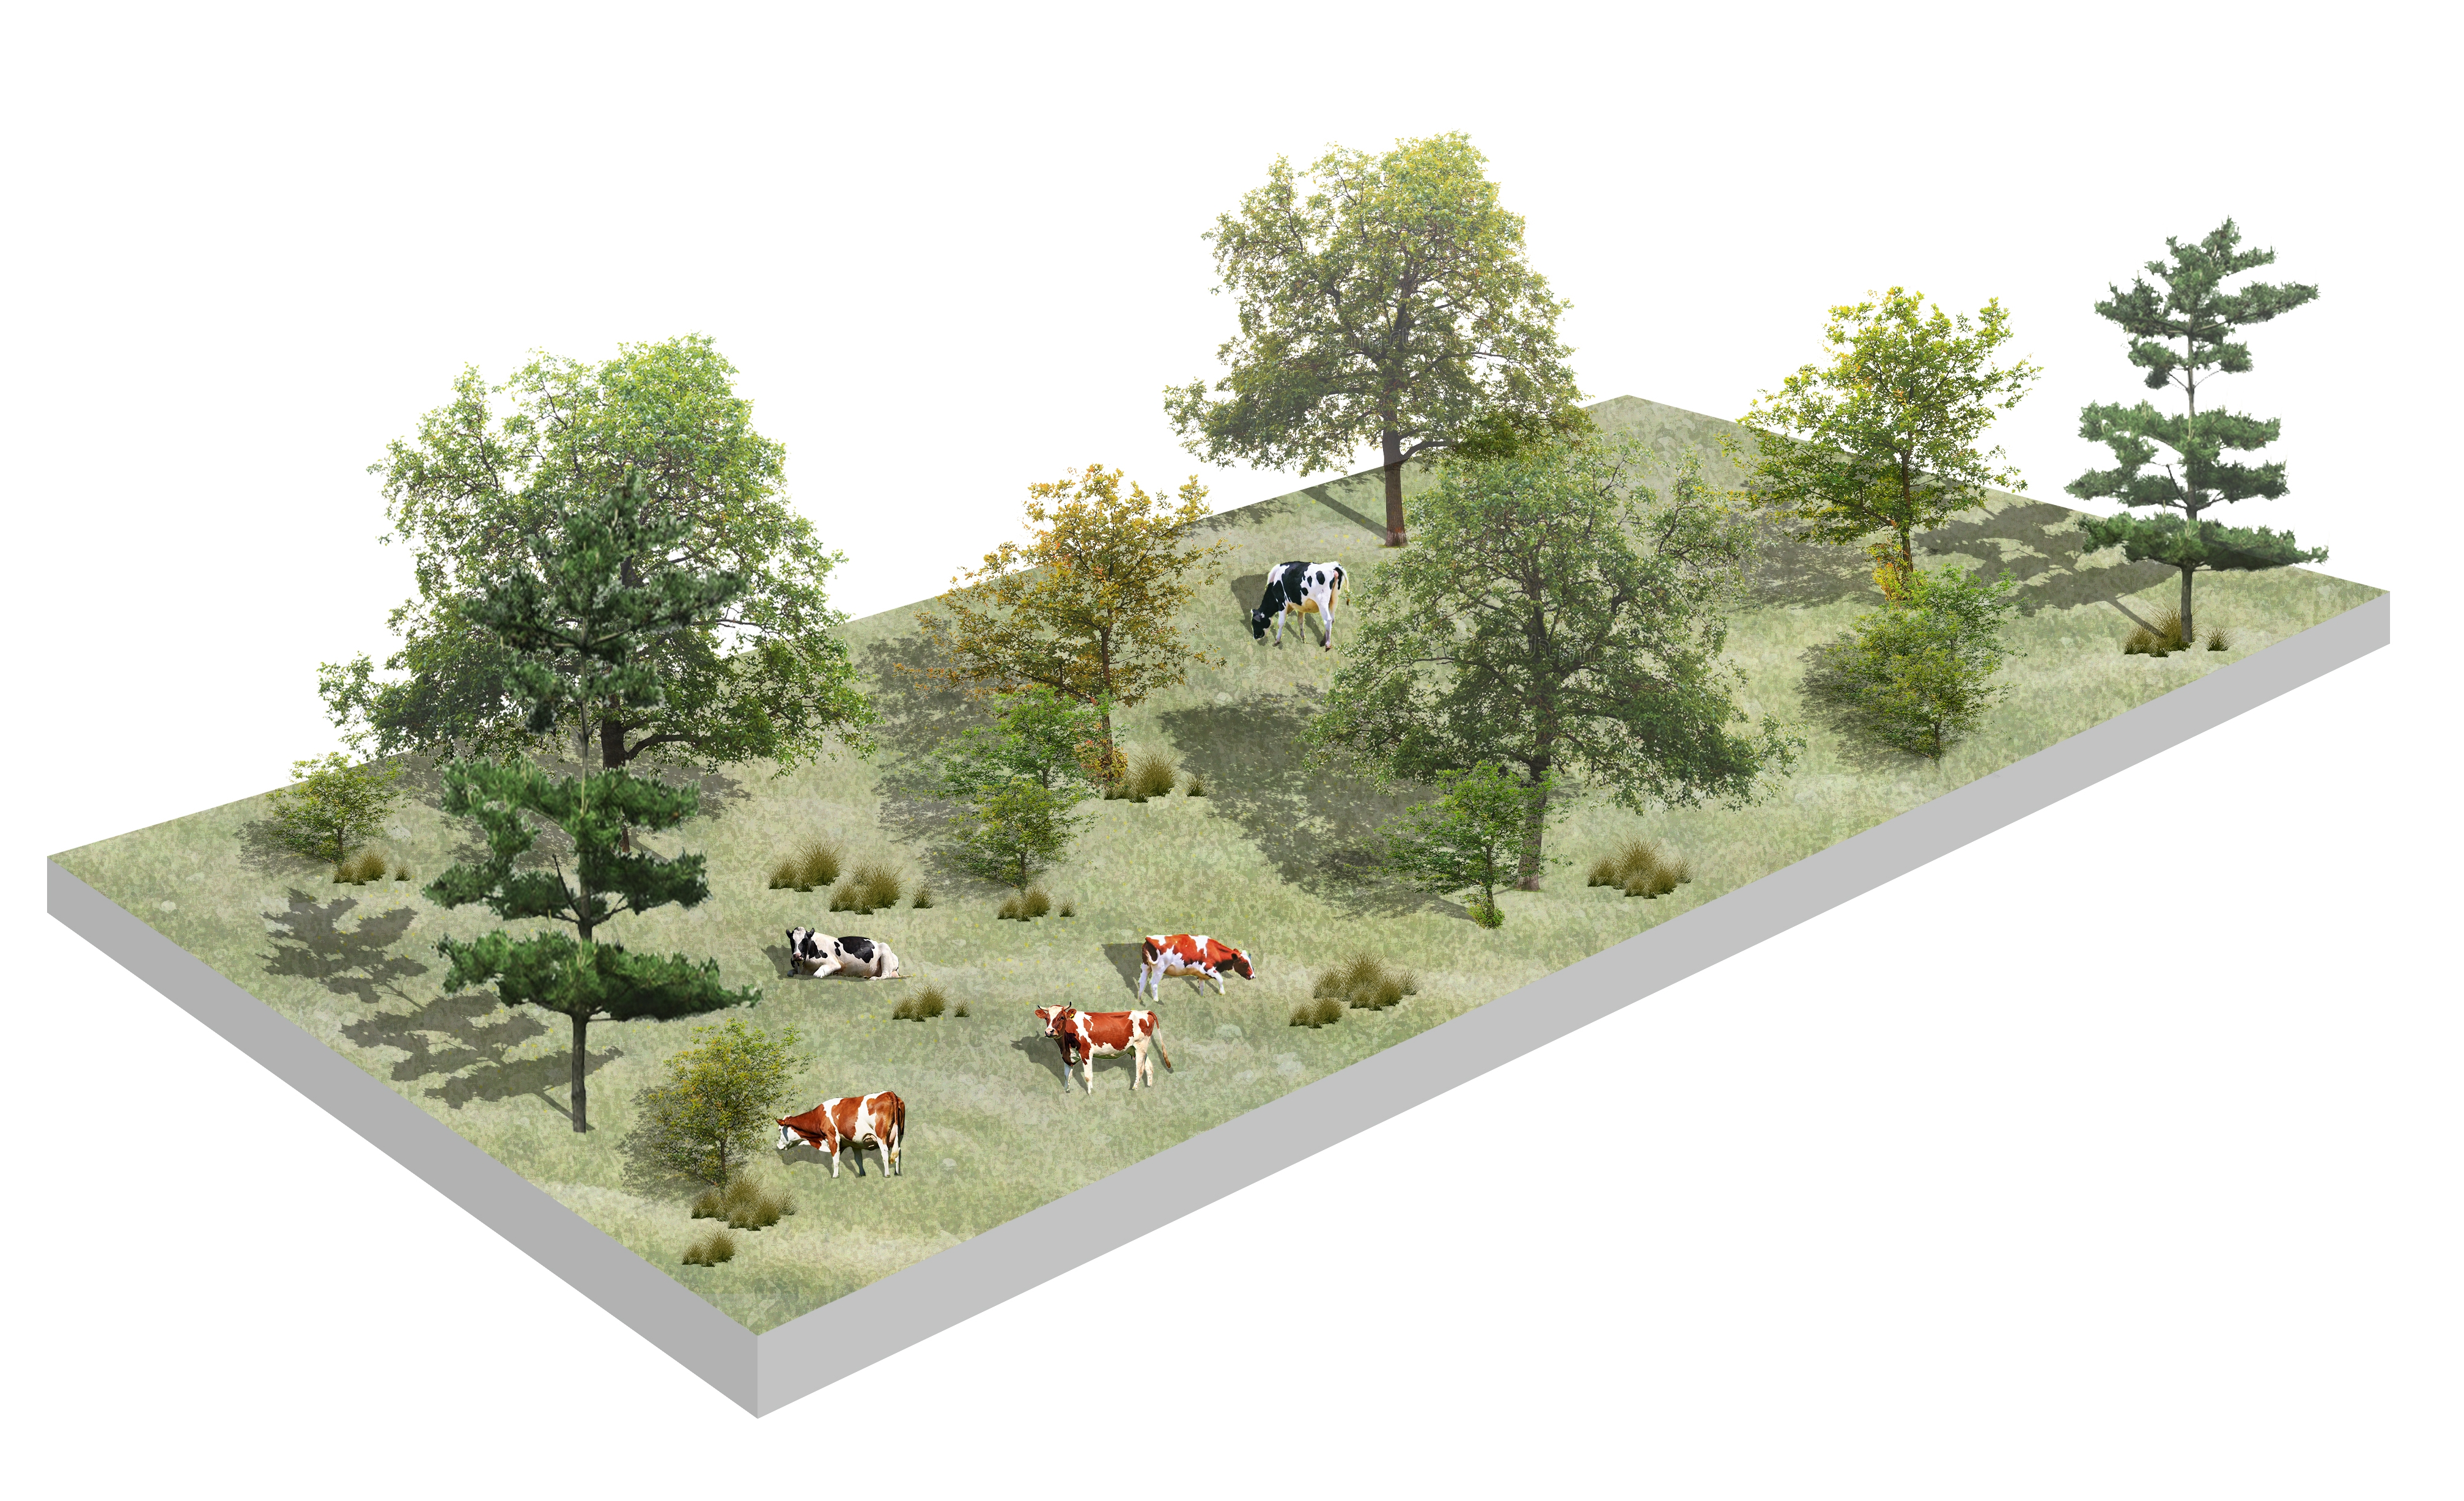 A visualisation of a silvopasture with cows. ©Face Design Studio 2019